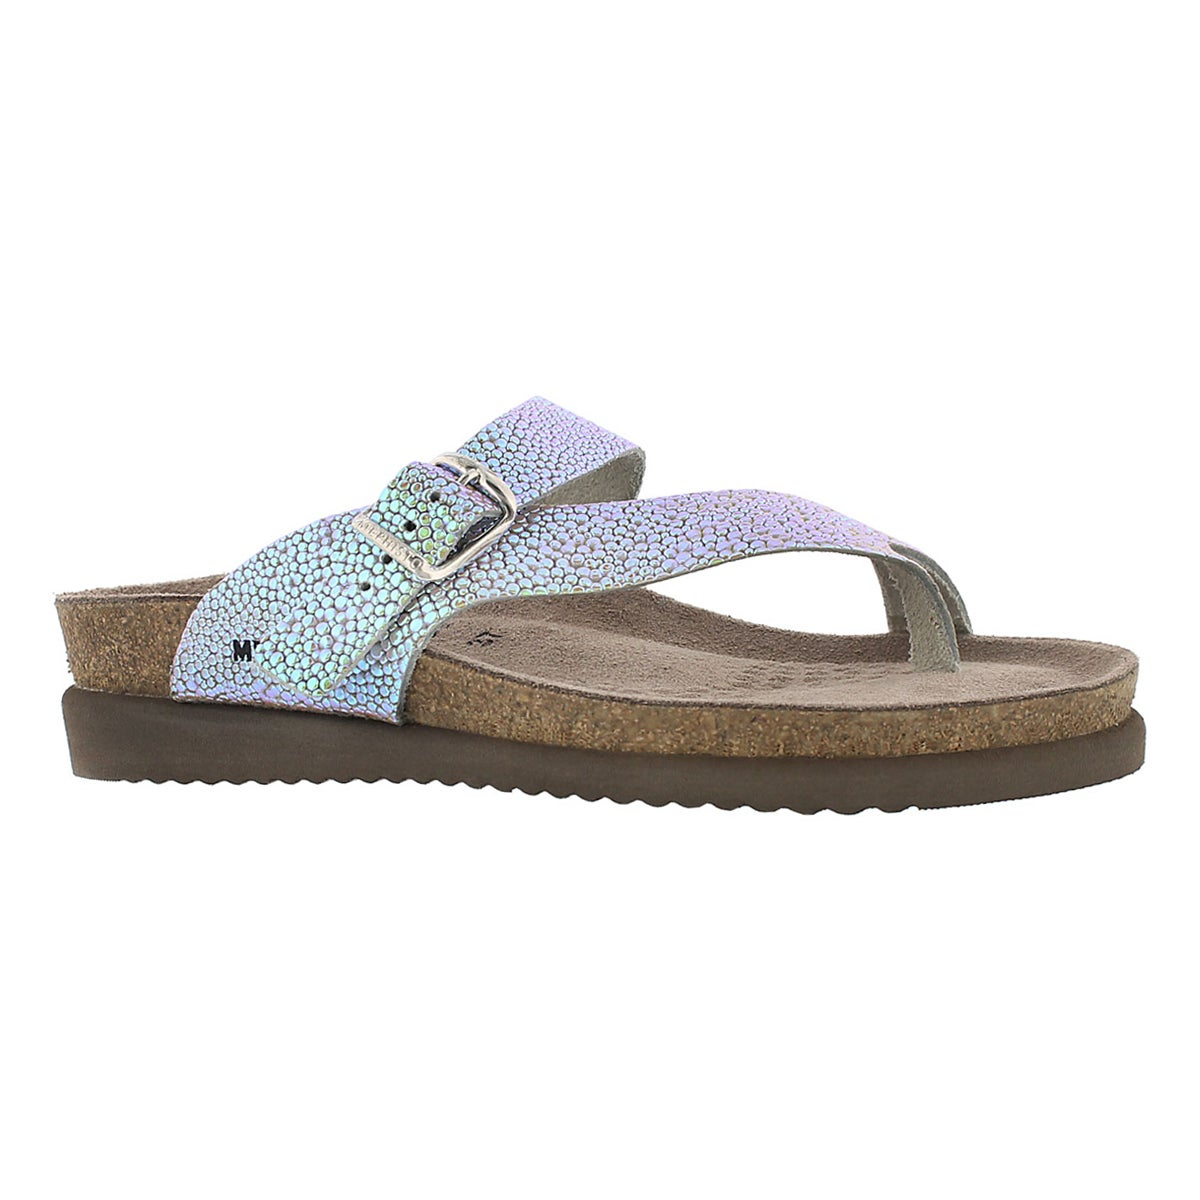 Women's HELEN salsa nickel cork footbed thongs